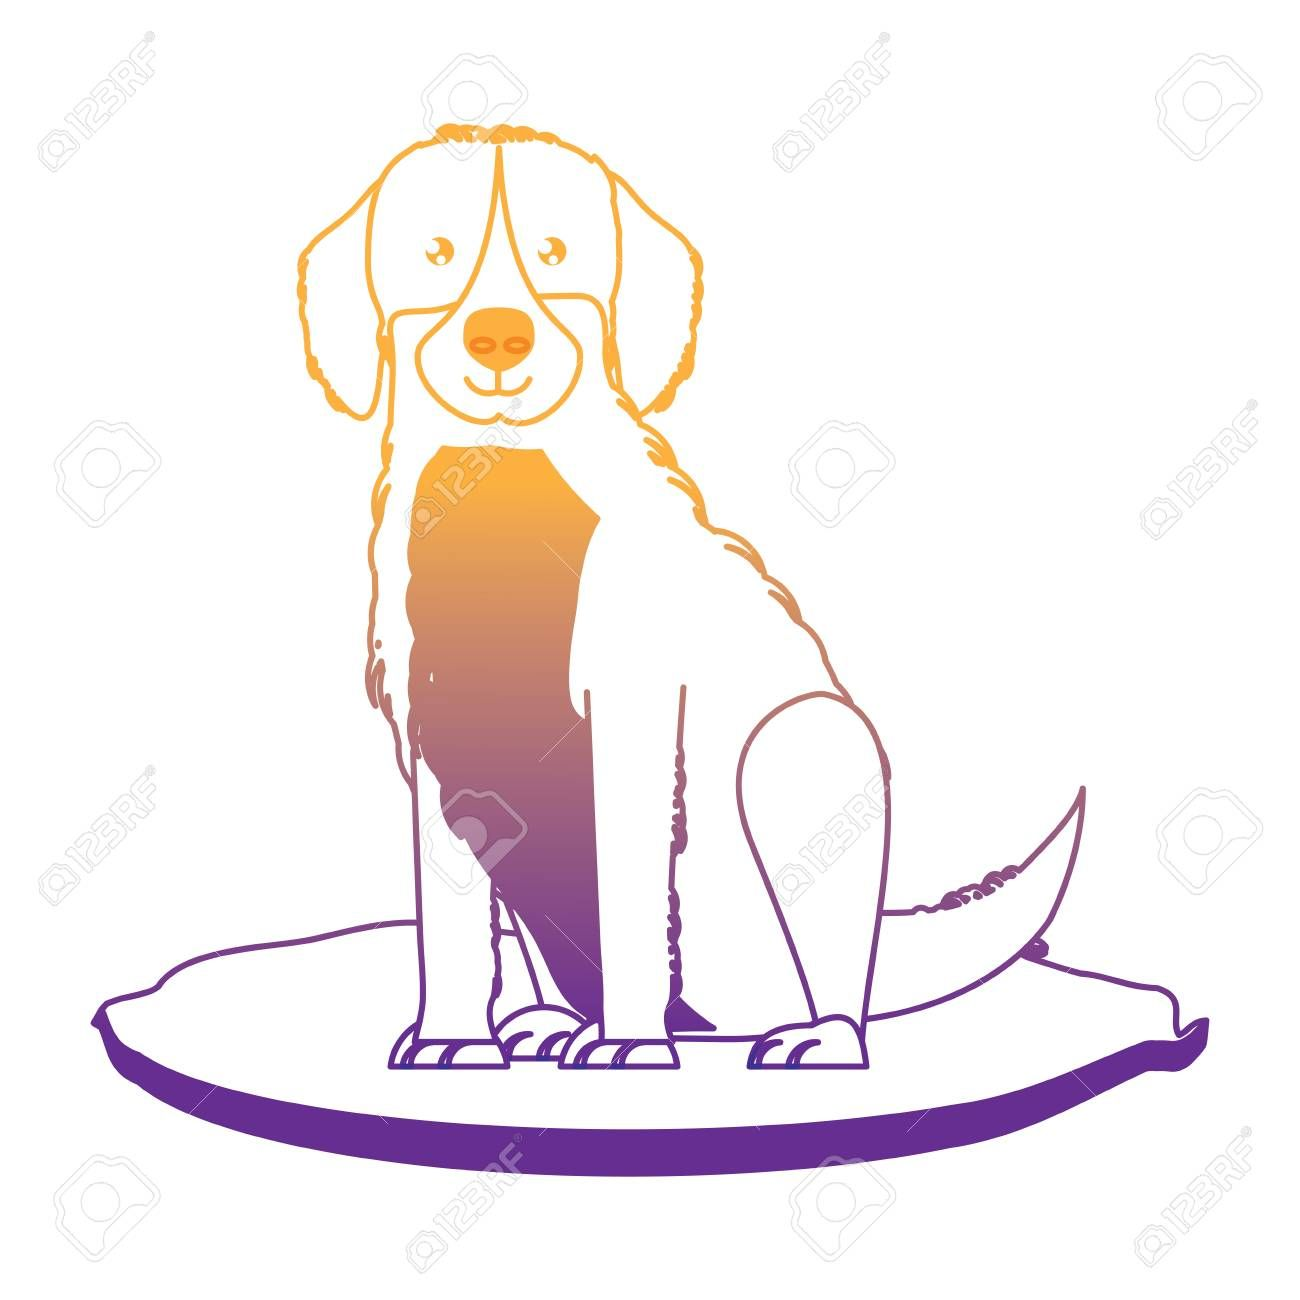 Cute Golden Retriever Icon Over White Background Vector